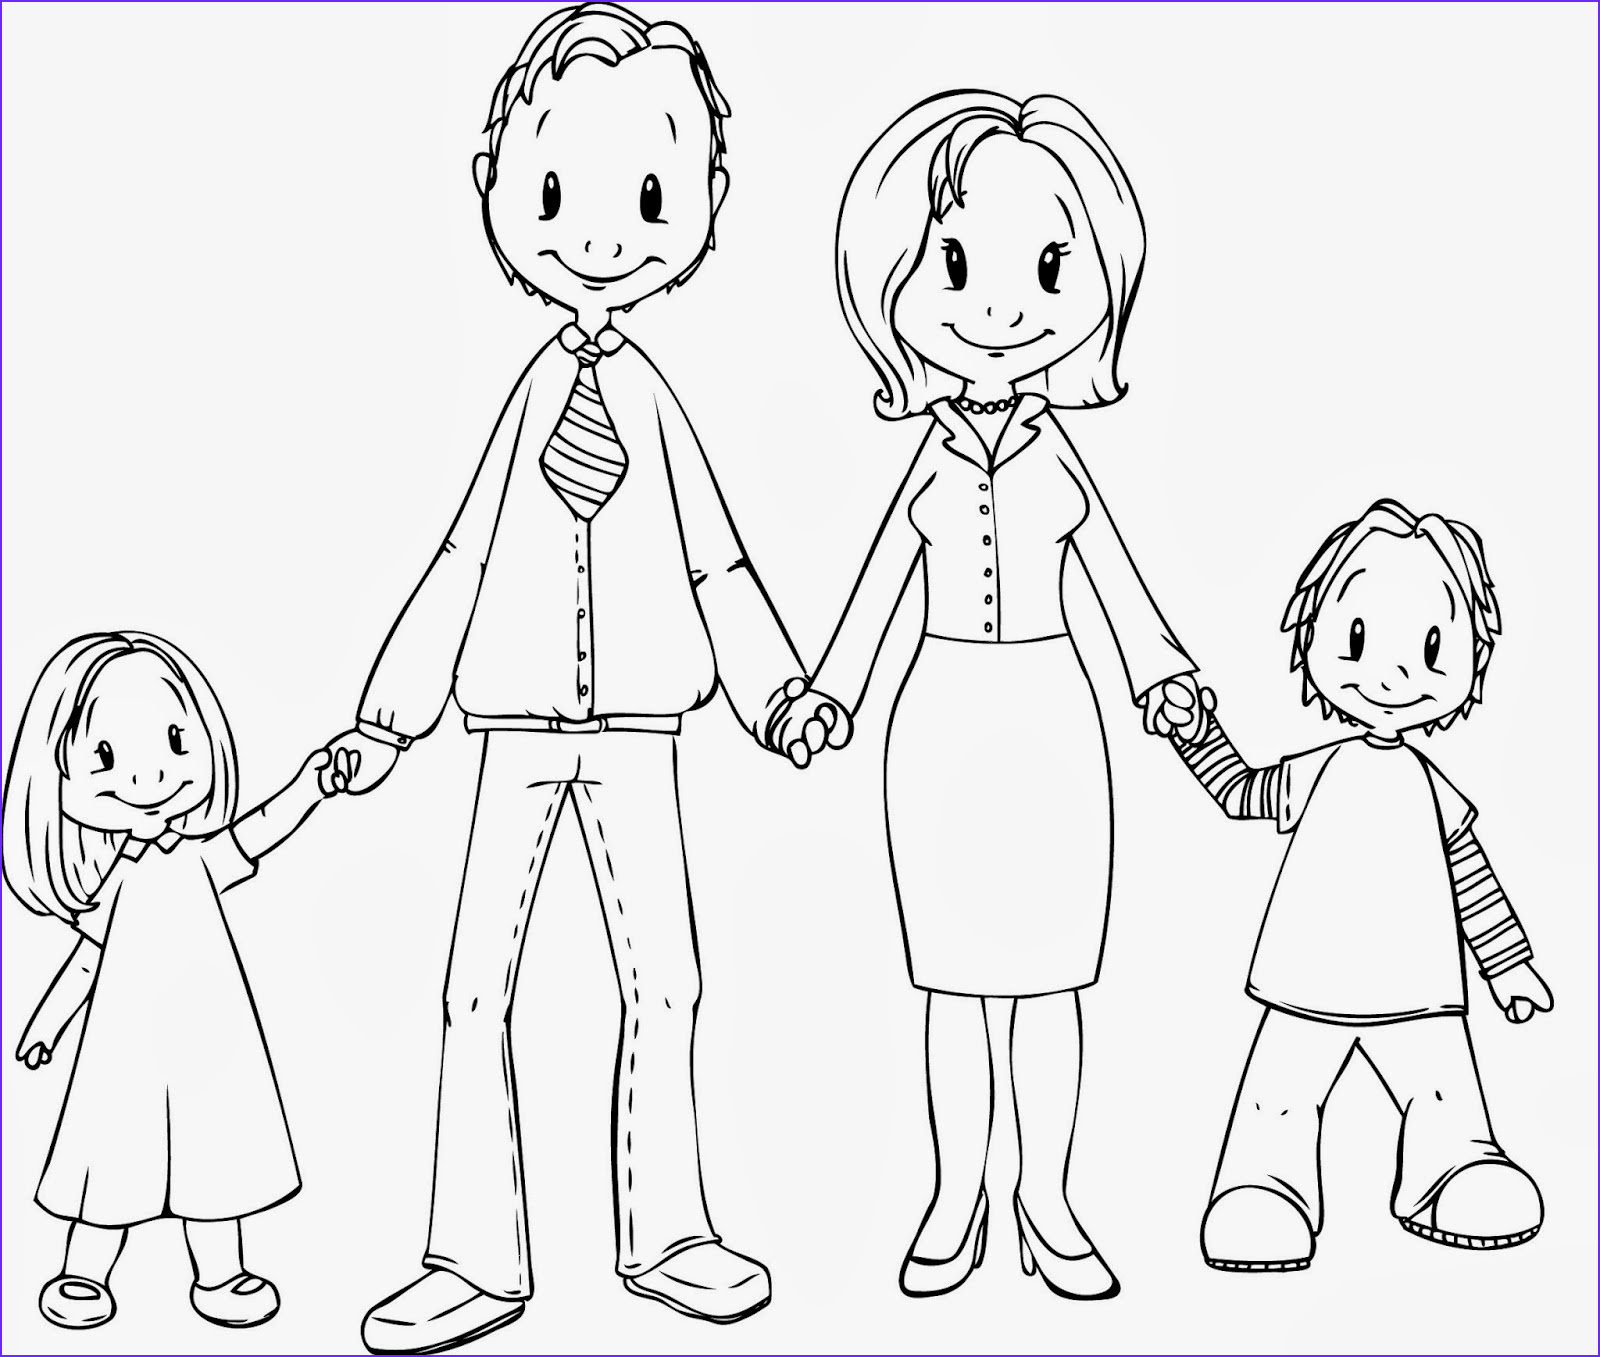 Coloring Page Of A Family Elegant Photos Simple English Speaking topics Introduce Yourself and